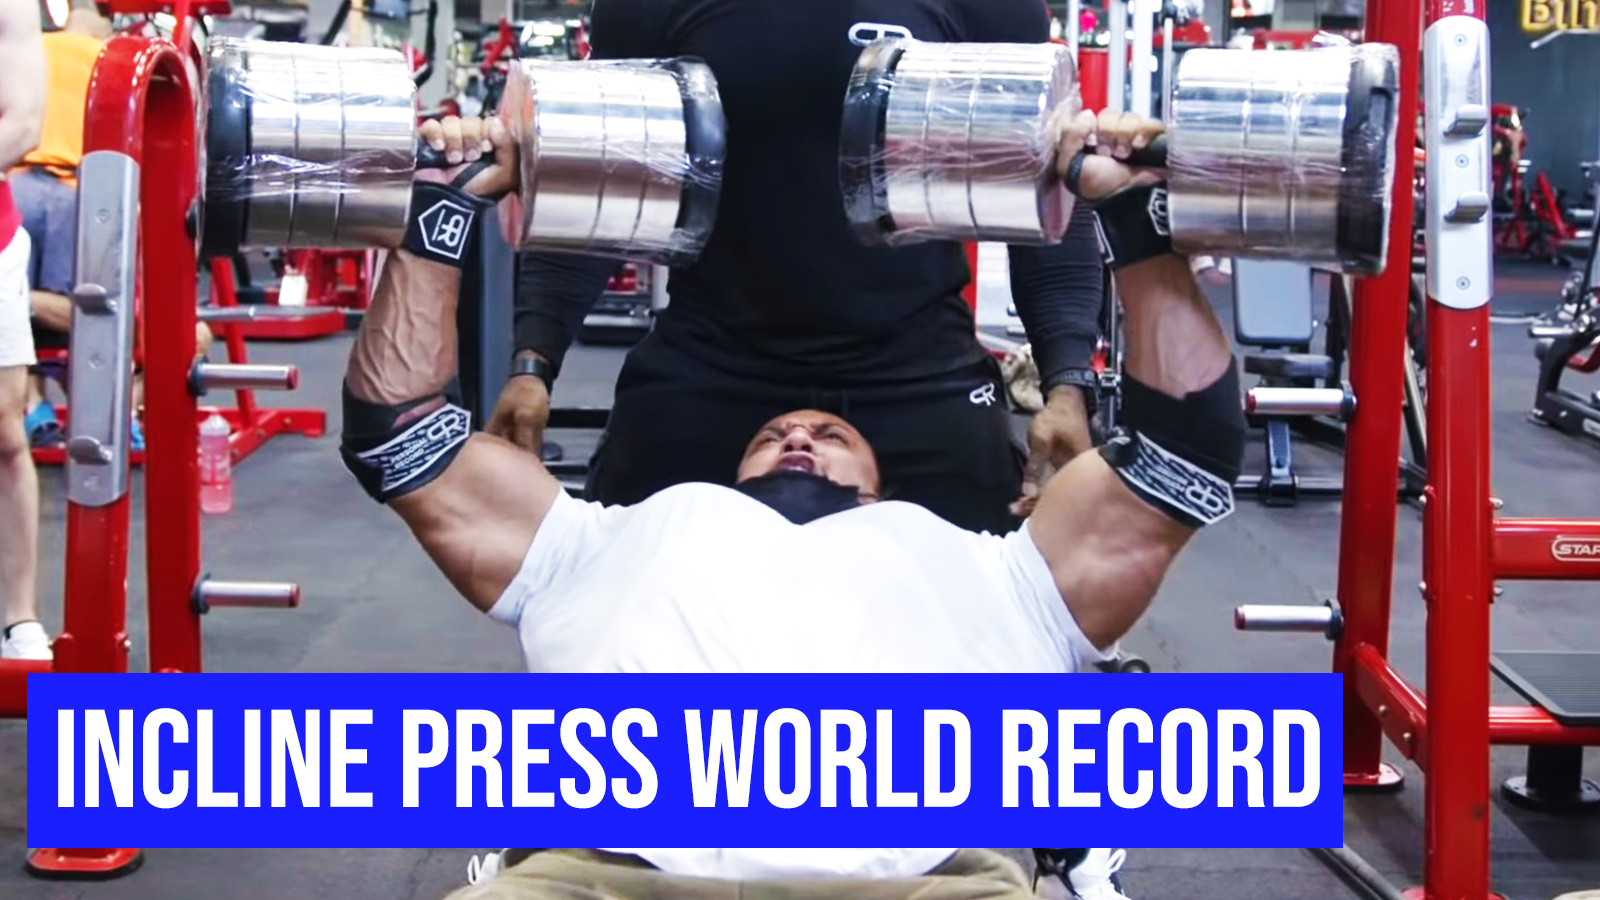 Larry Wheels pressing 242 lbs for reps.